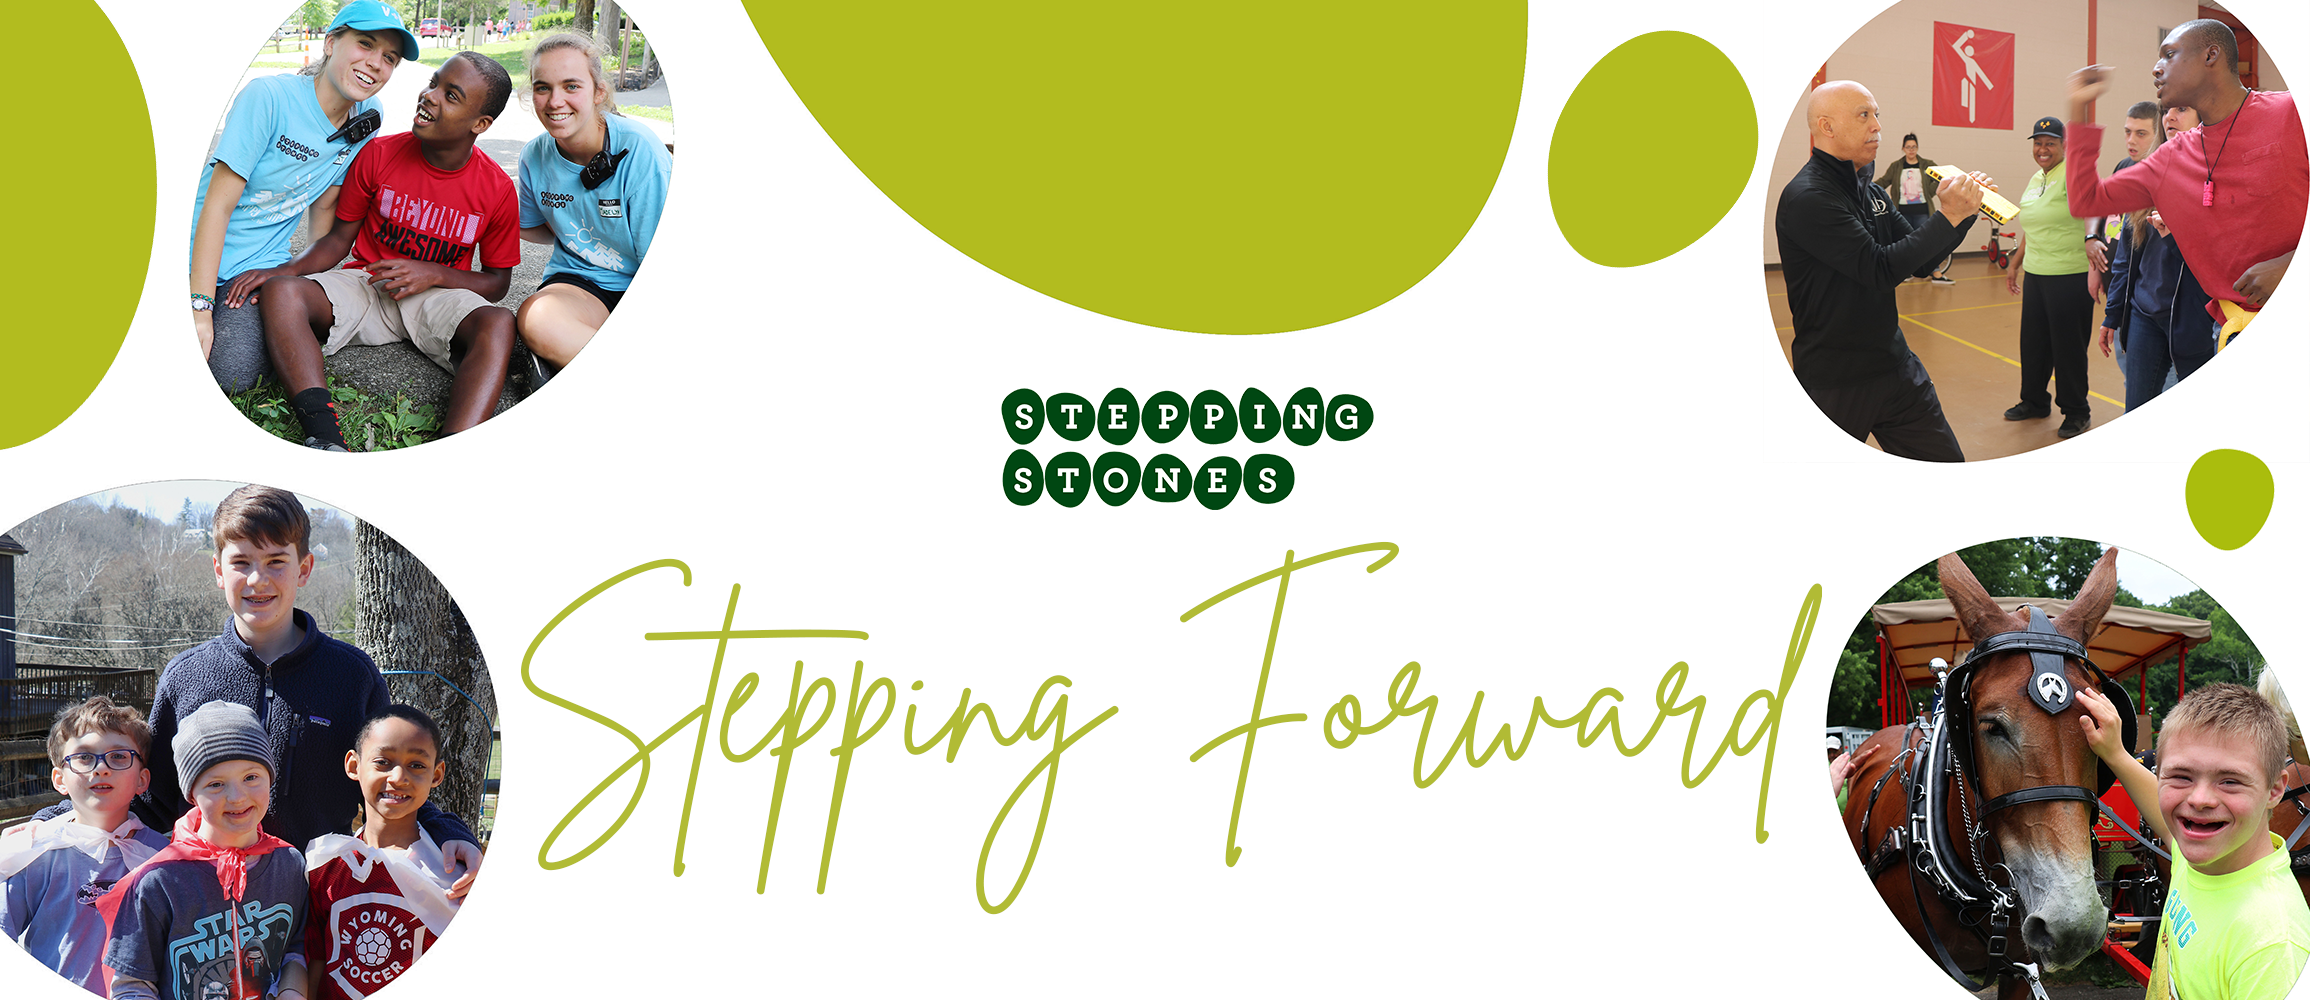 Stepping Stones is Stepping Forward - Nonprofit Agency Serving People with Disabilities in Greater Cincinnati, Ohio